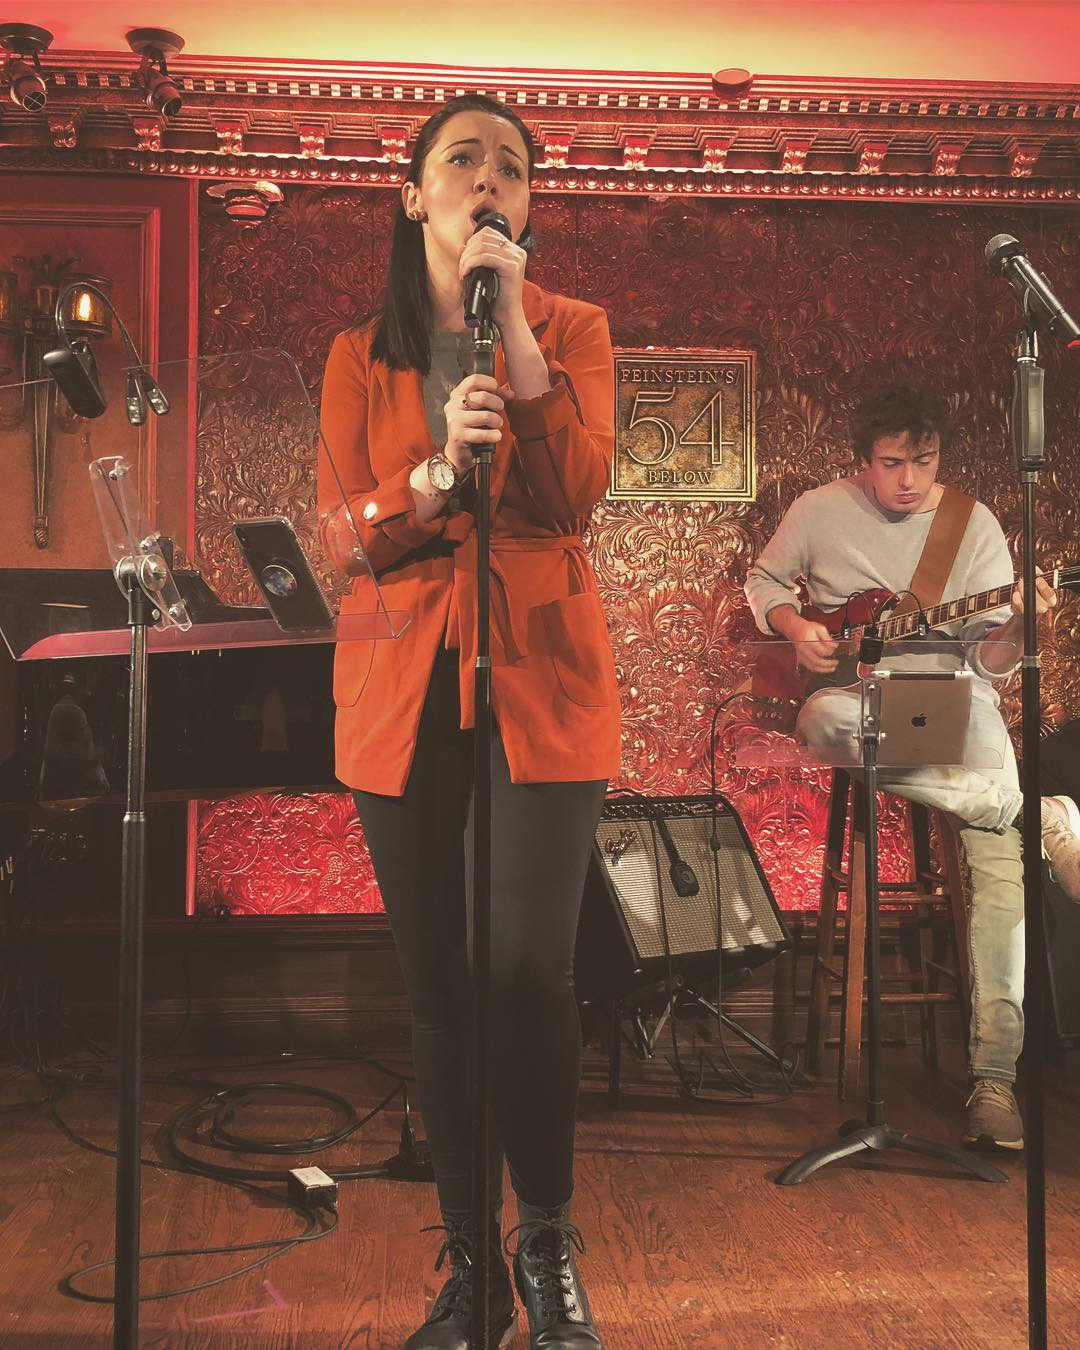 54Sings ABBA - November 9th, 2018, Nicole was a part of the 54Below cast to sing ABBA!